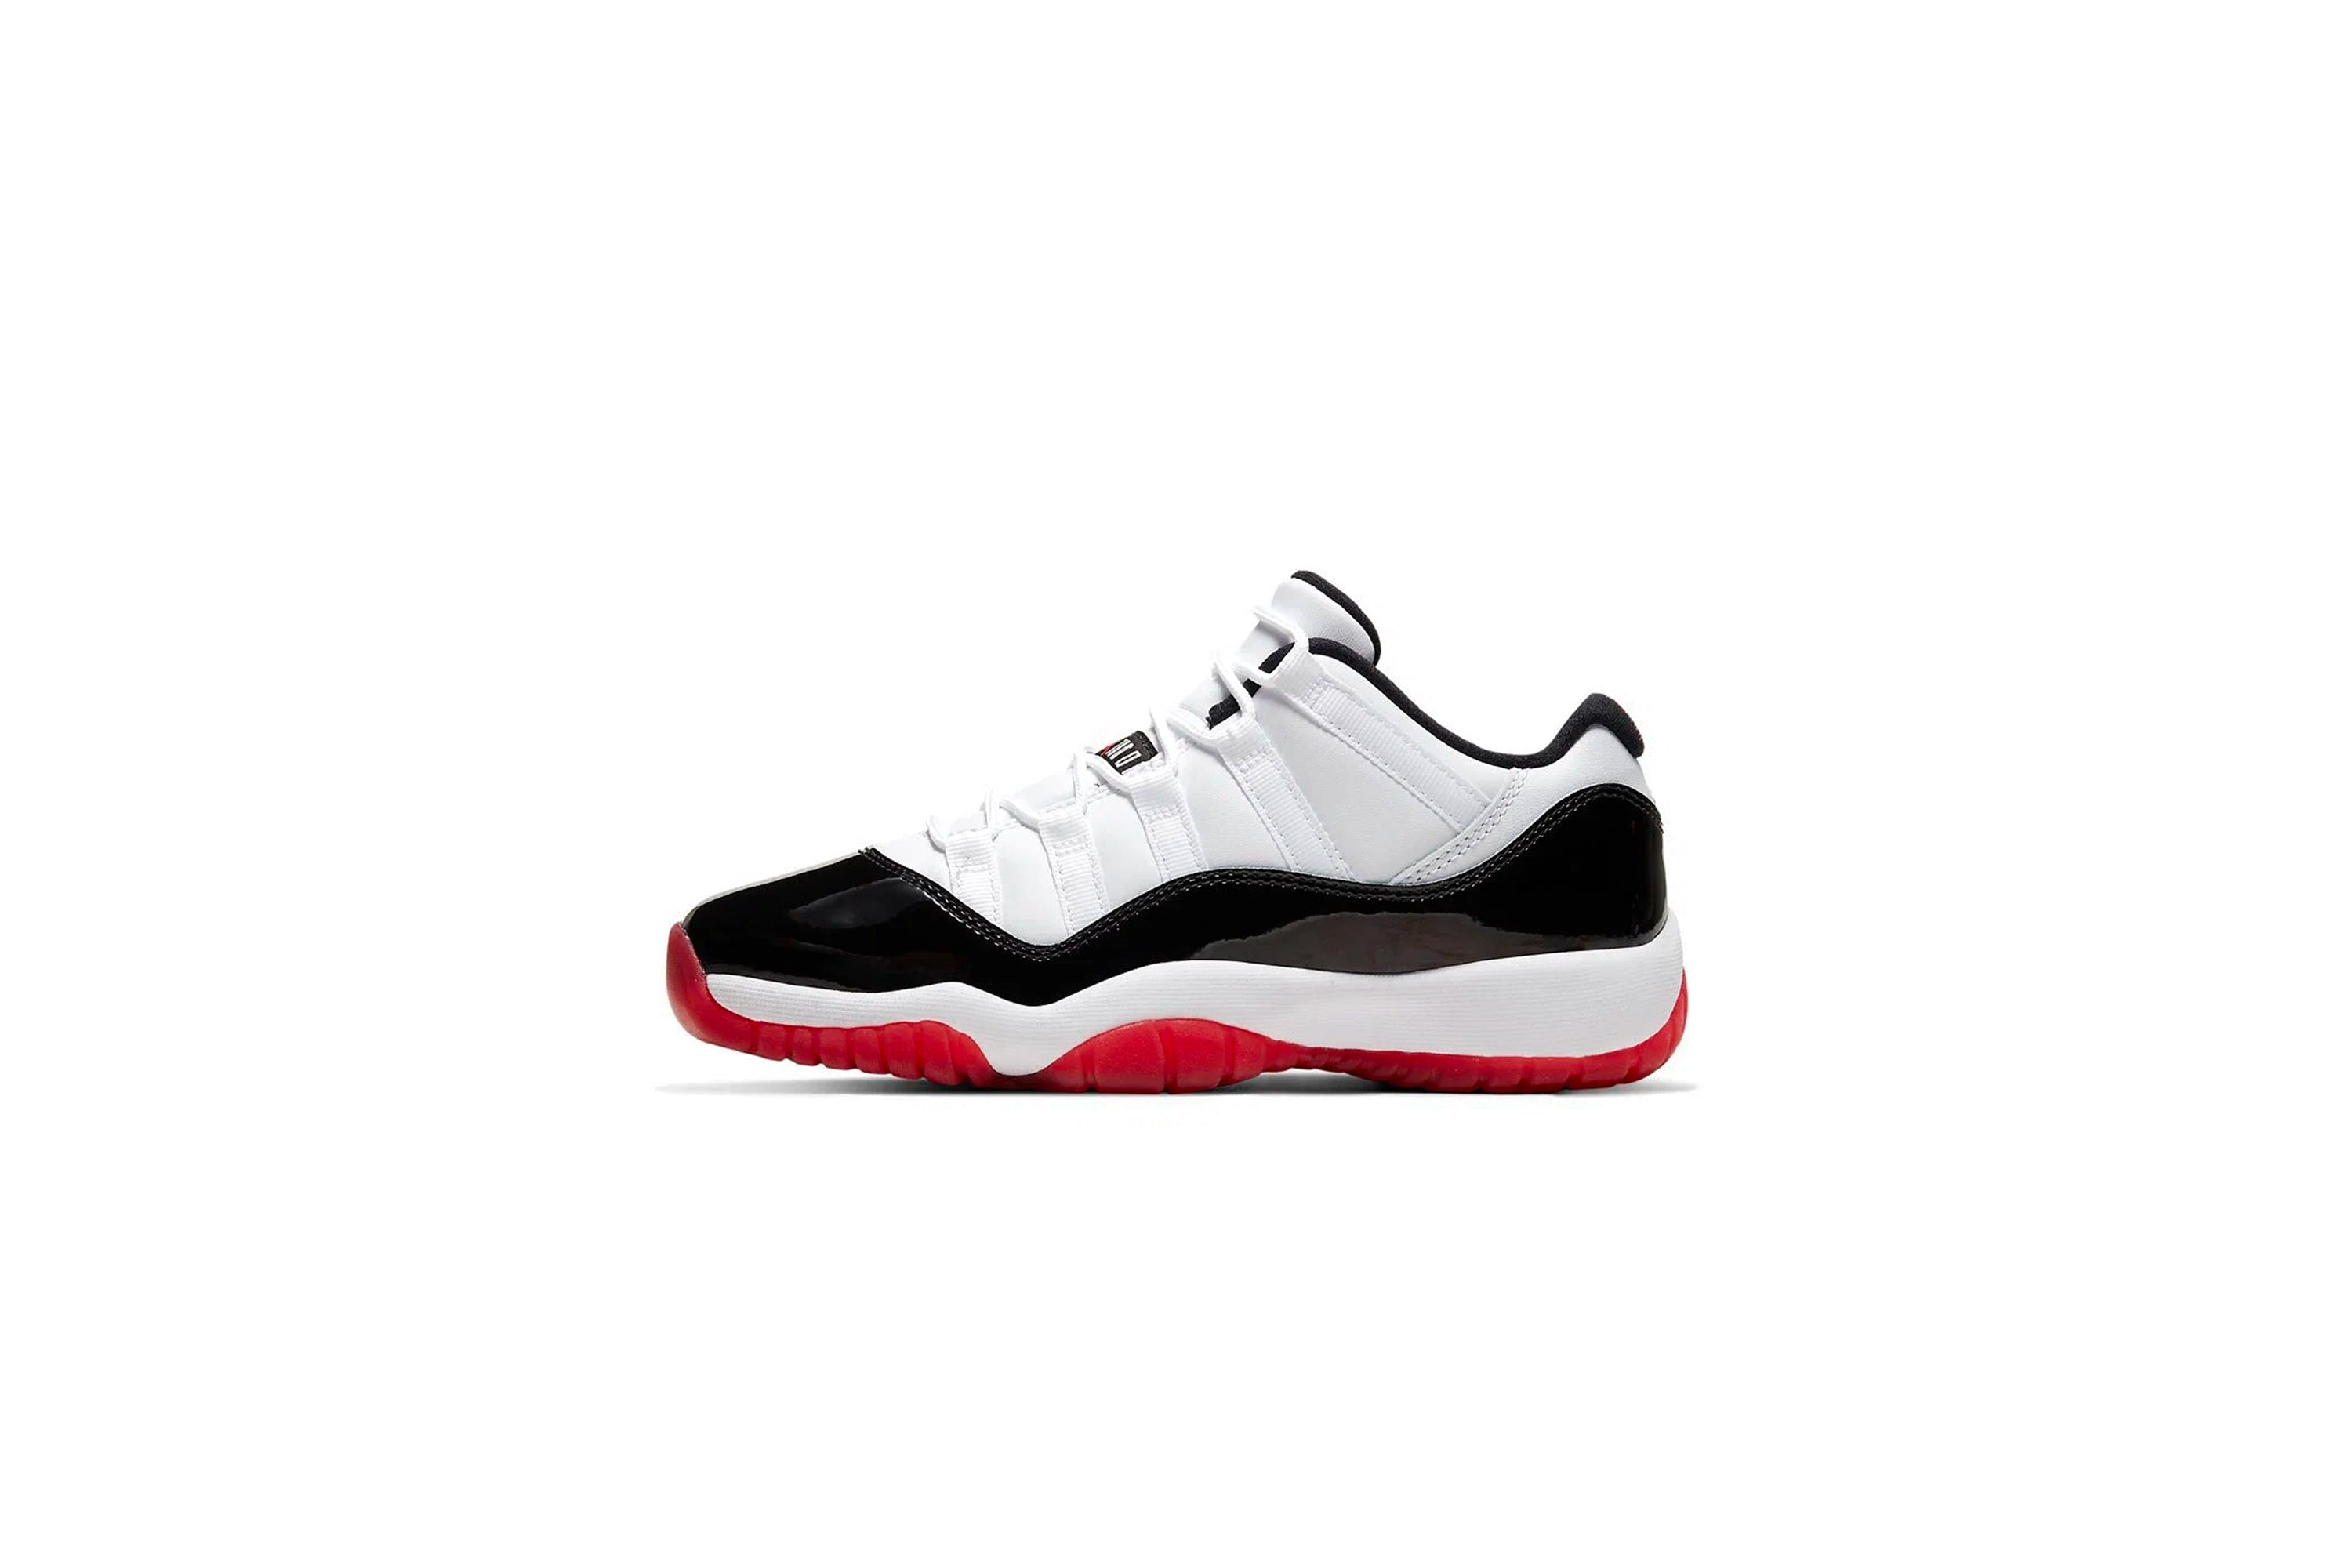 Air Jordan 11 Retro Low Gym Red Sneaker Politics